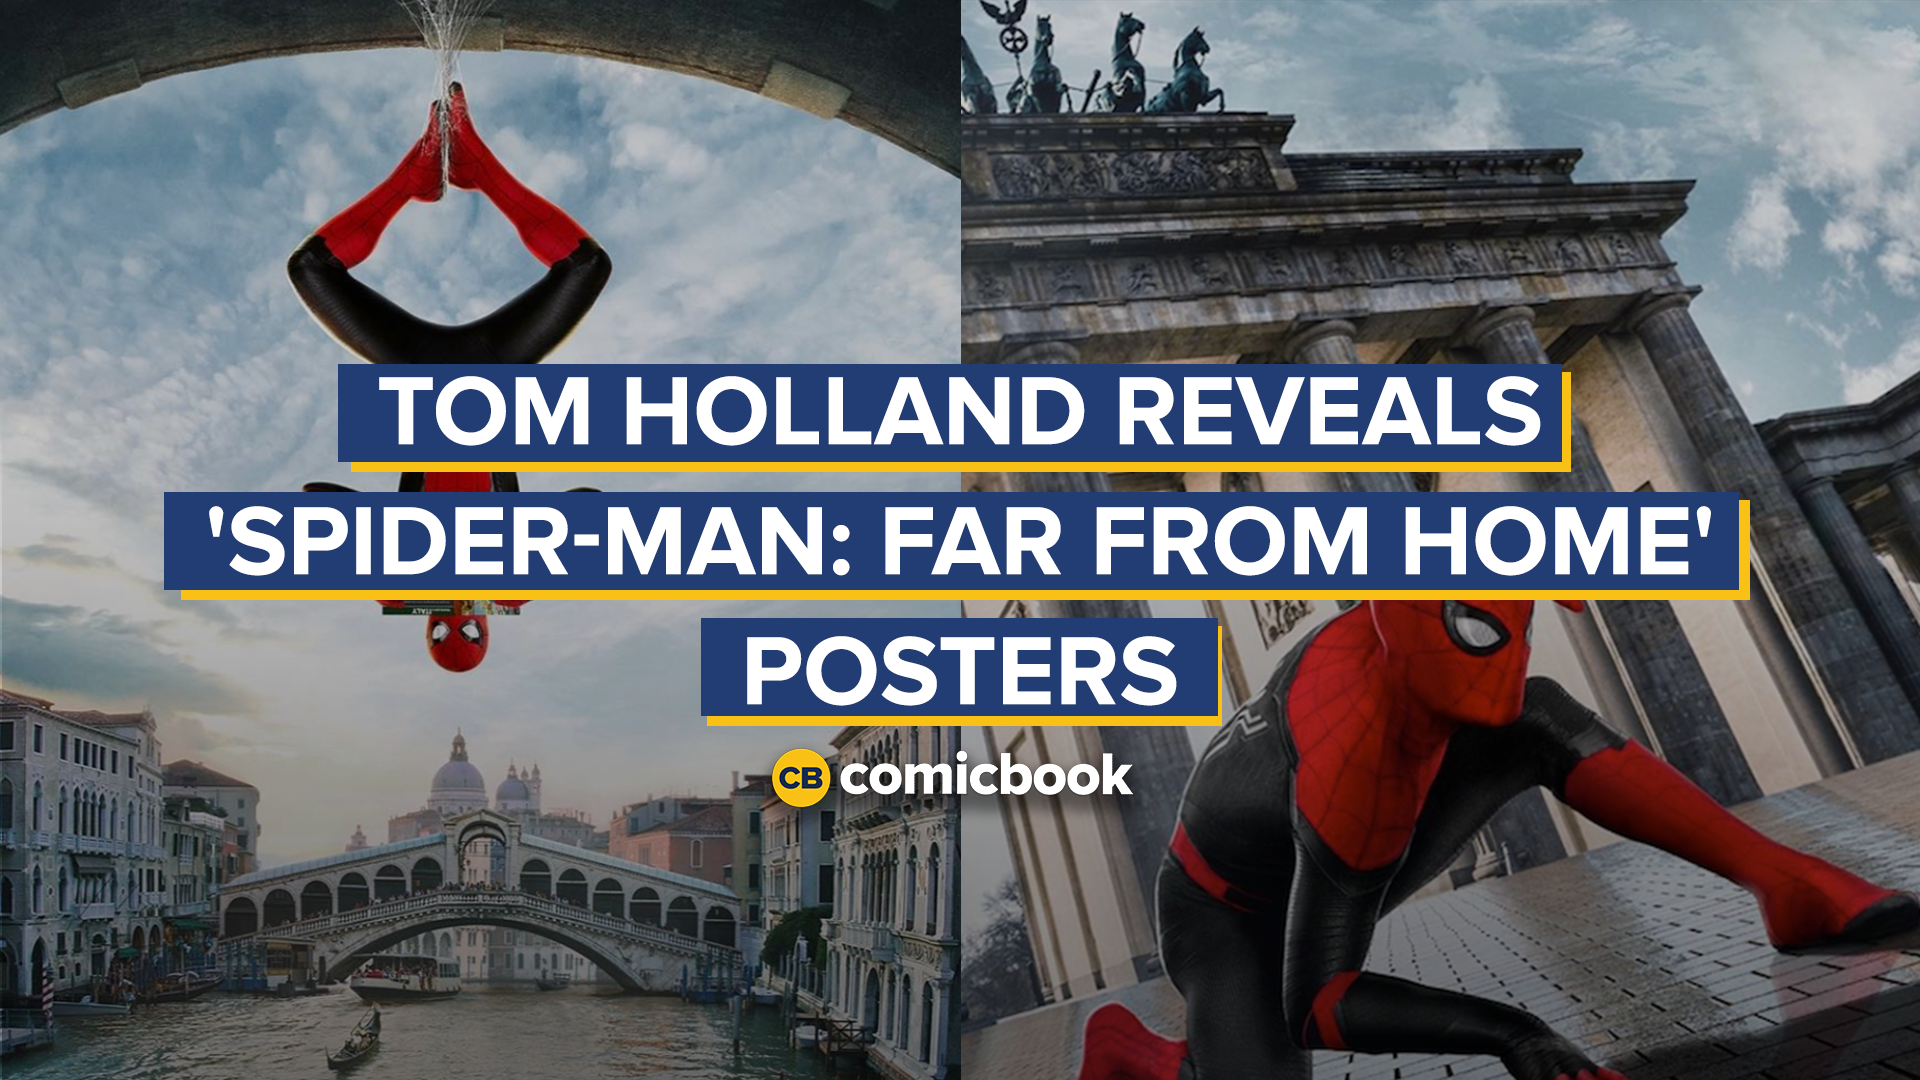 Tom Holland Reveals Three 'Spider-Man: Far From Home' Posters screen capture